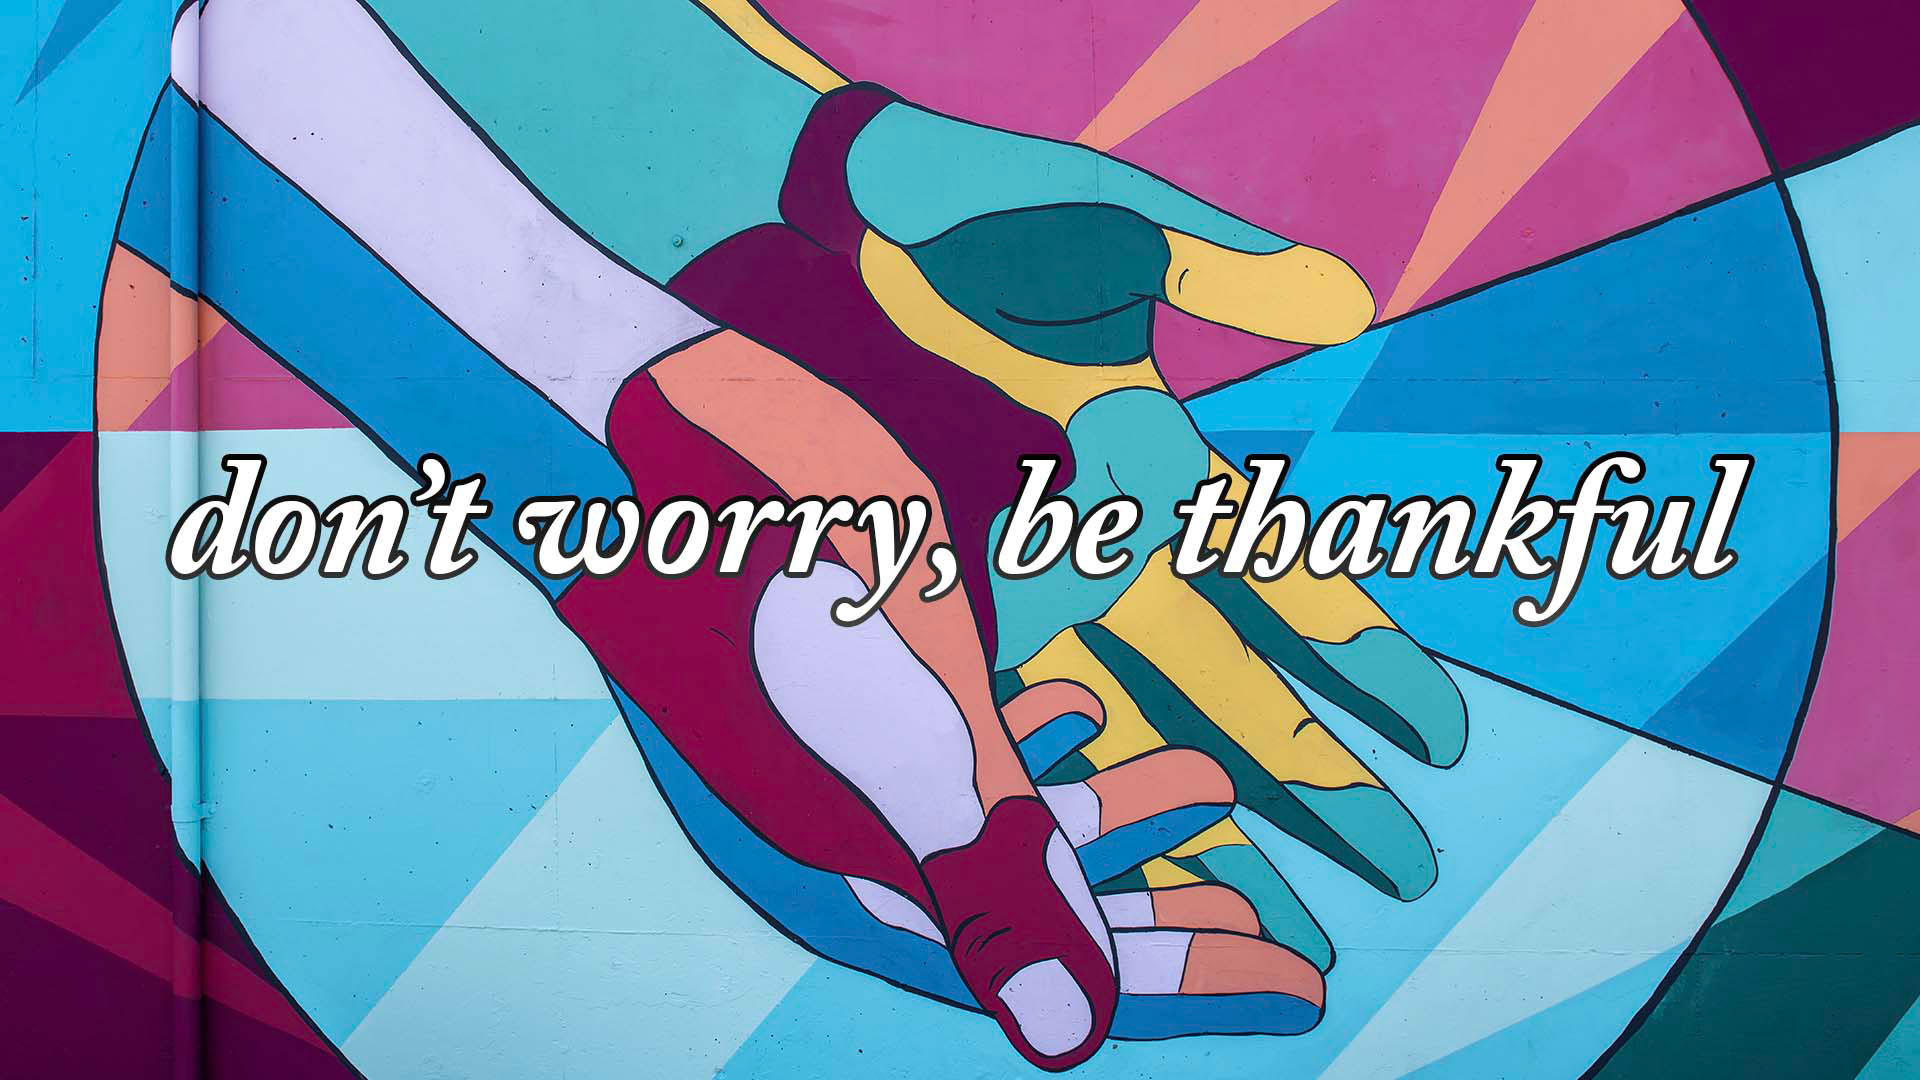 Series: Don't Worry, Be Thankful